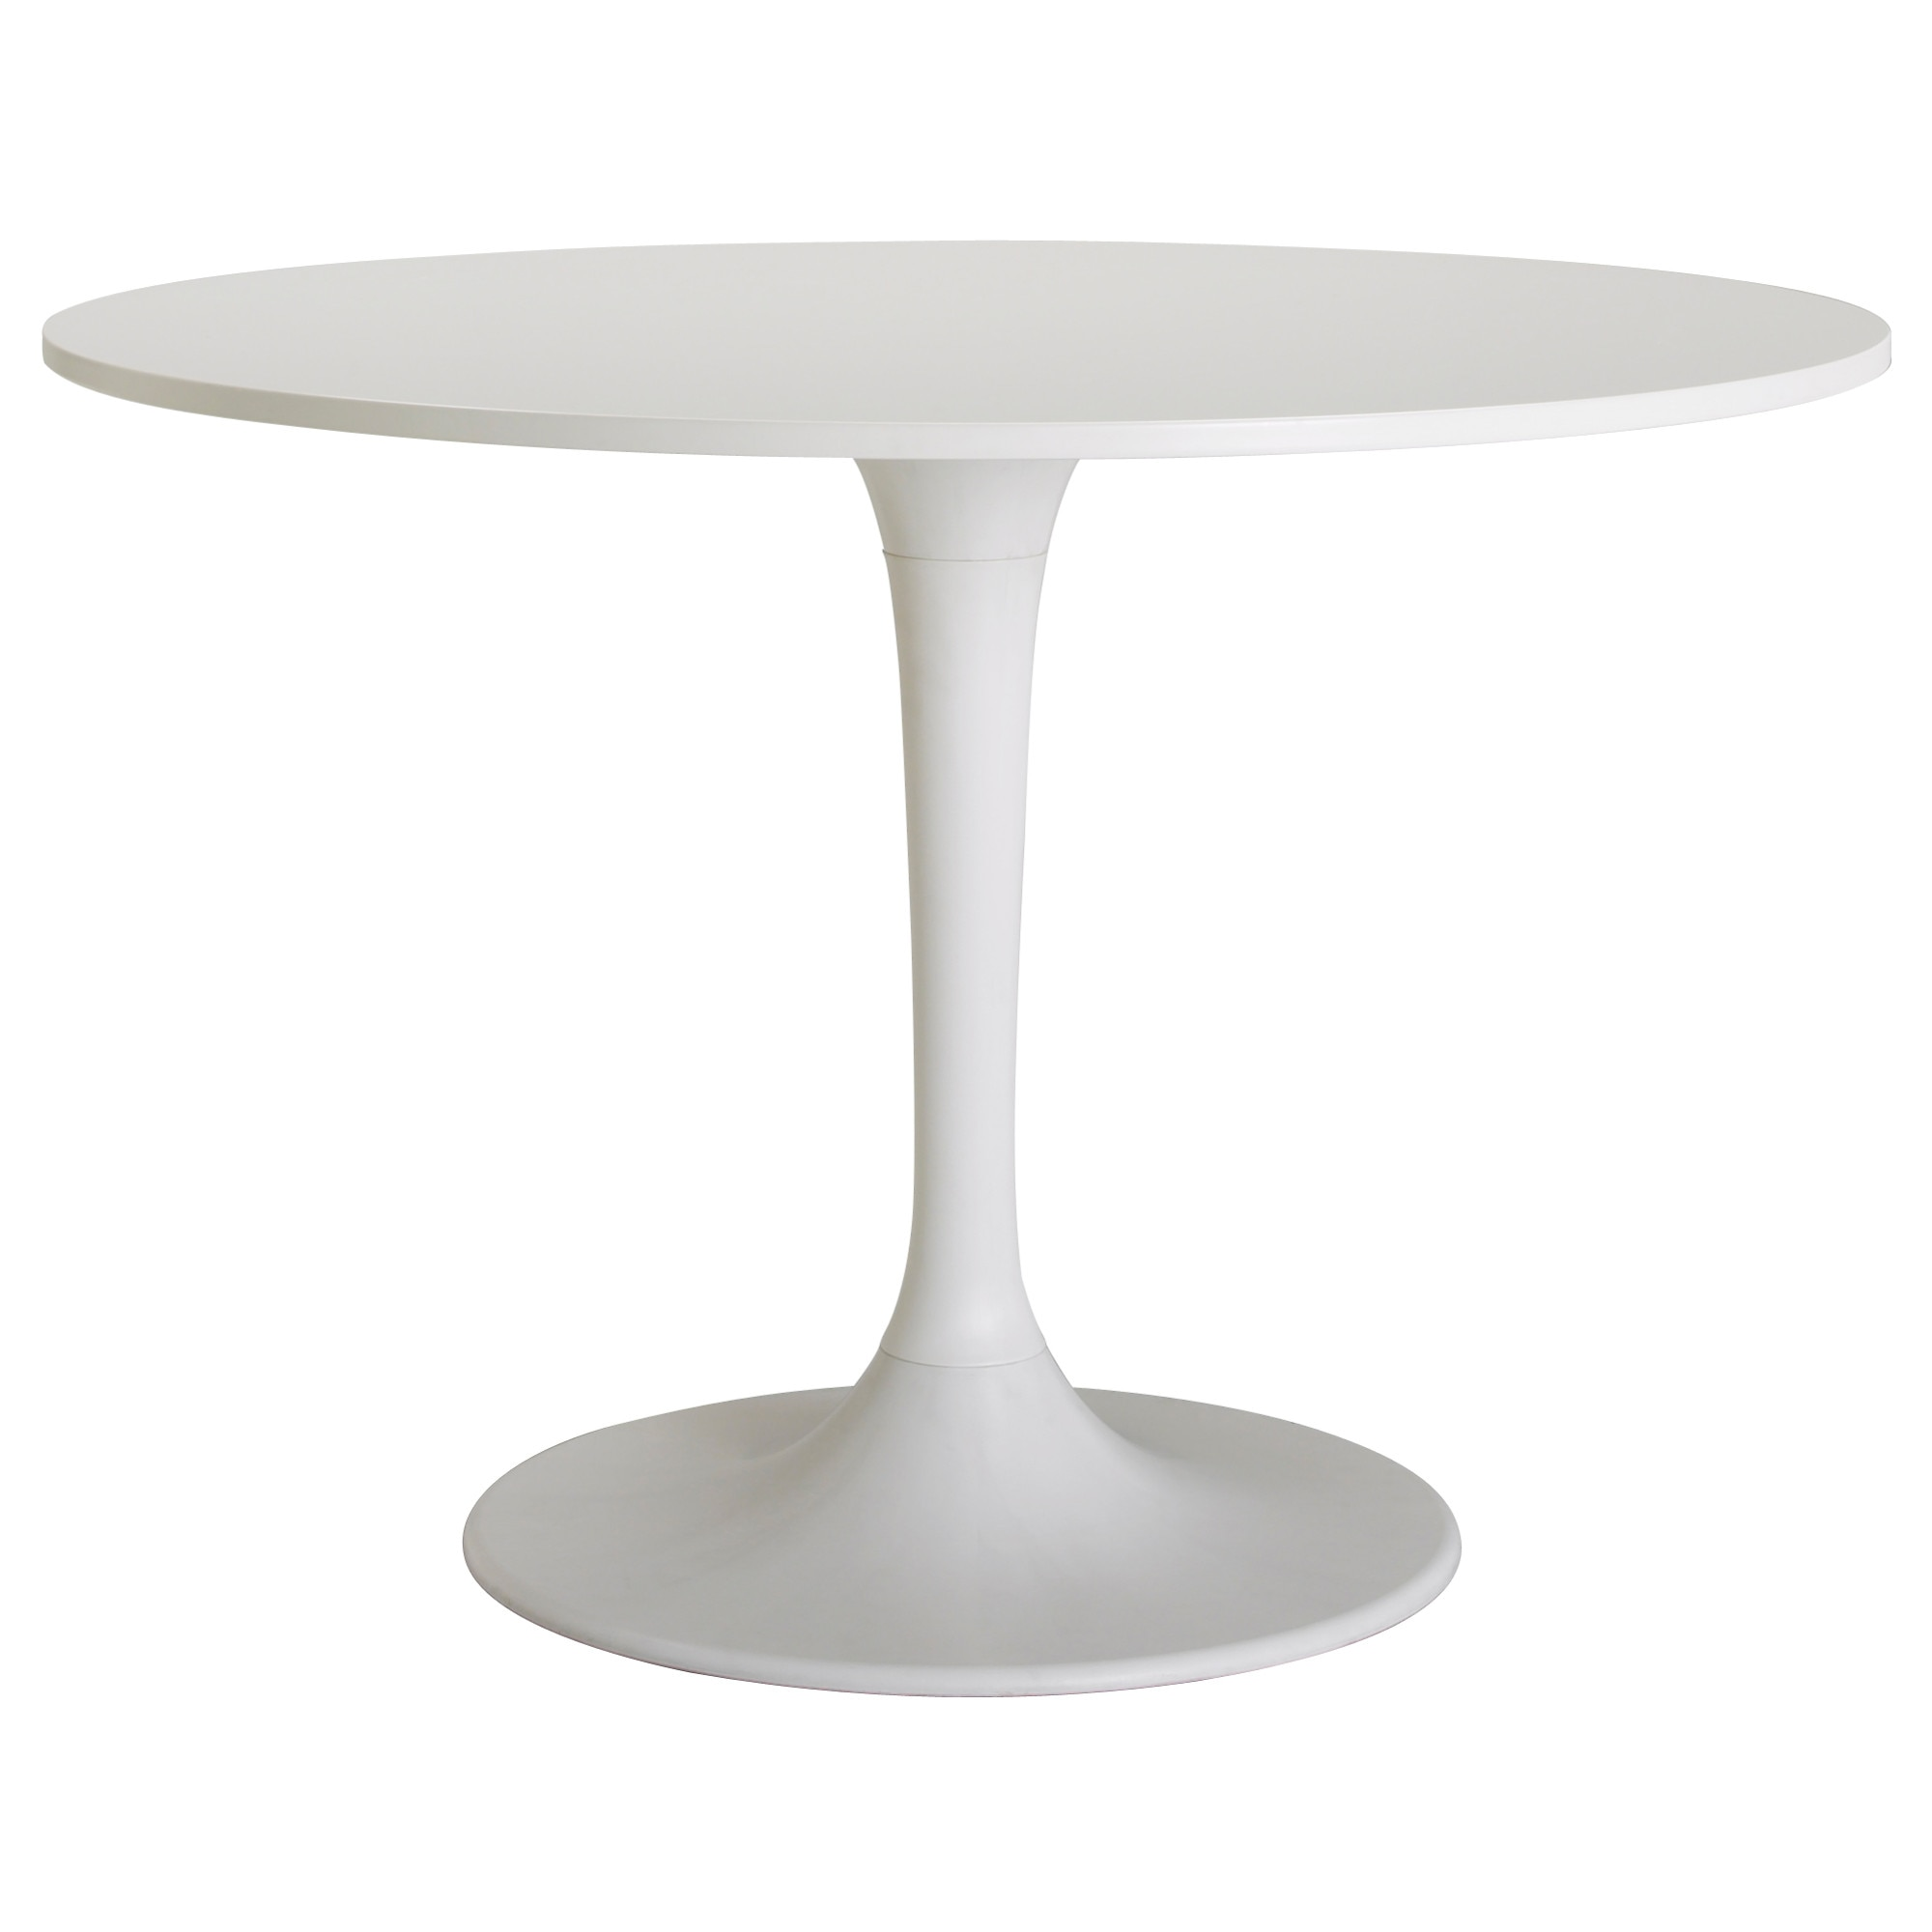 Round Dining Table docksta table - ikea